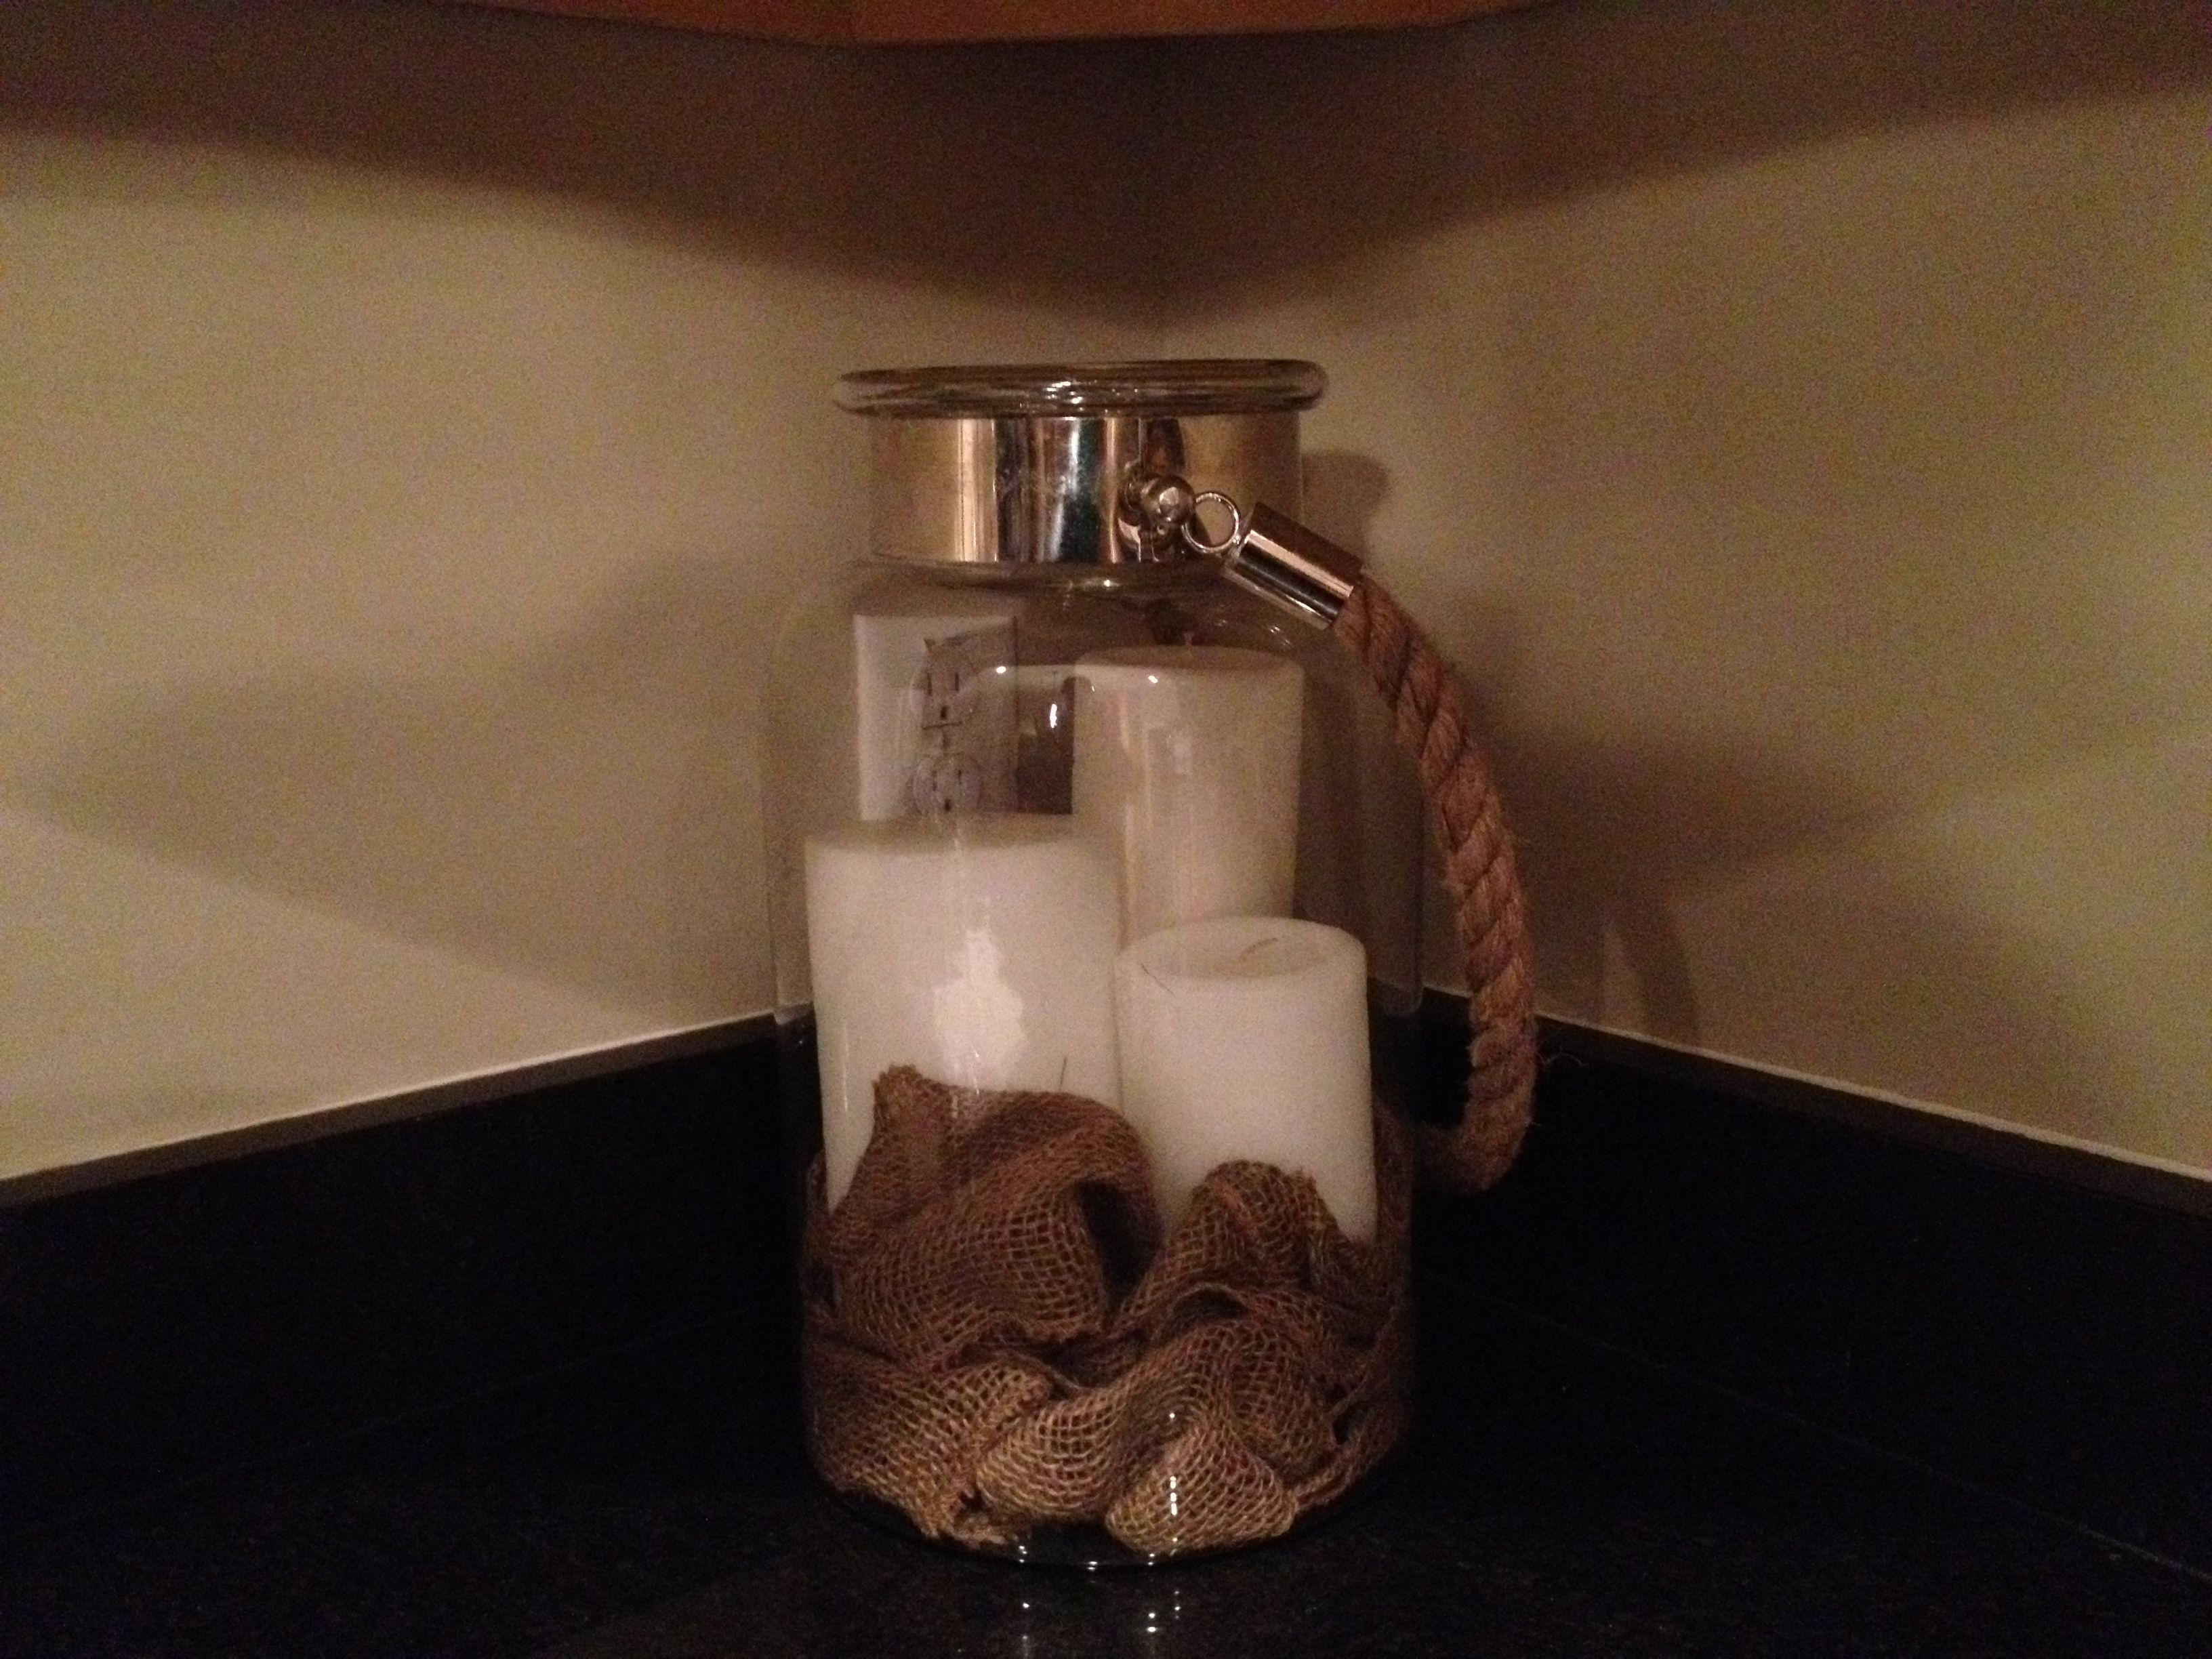 Burlap used in the base of a jar with candles